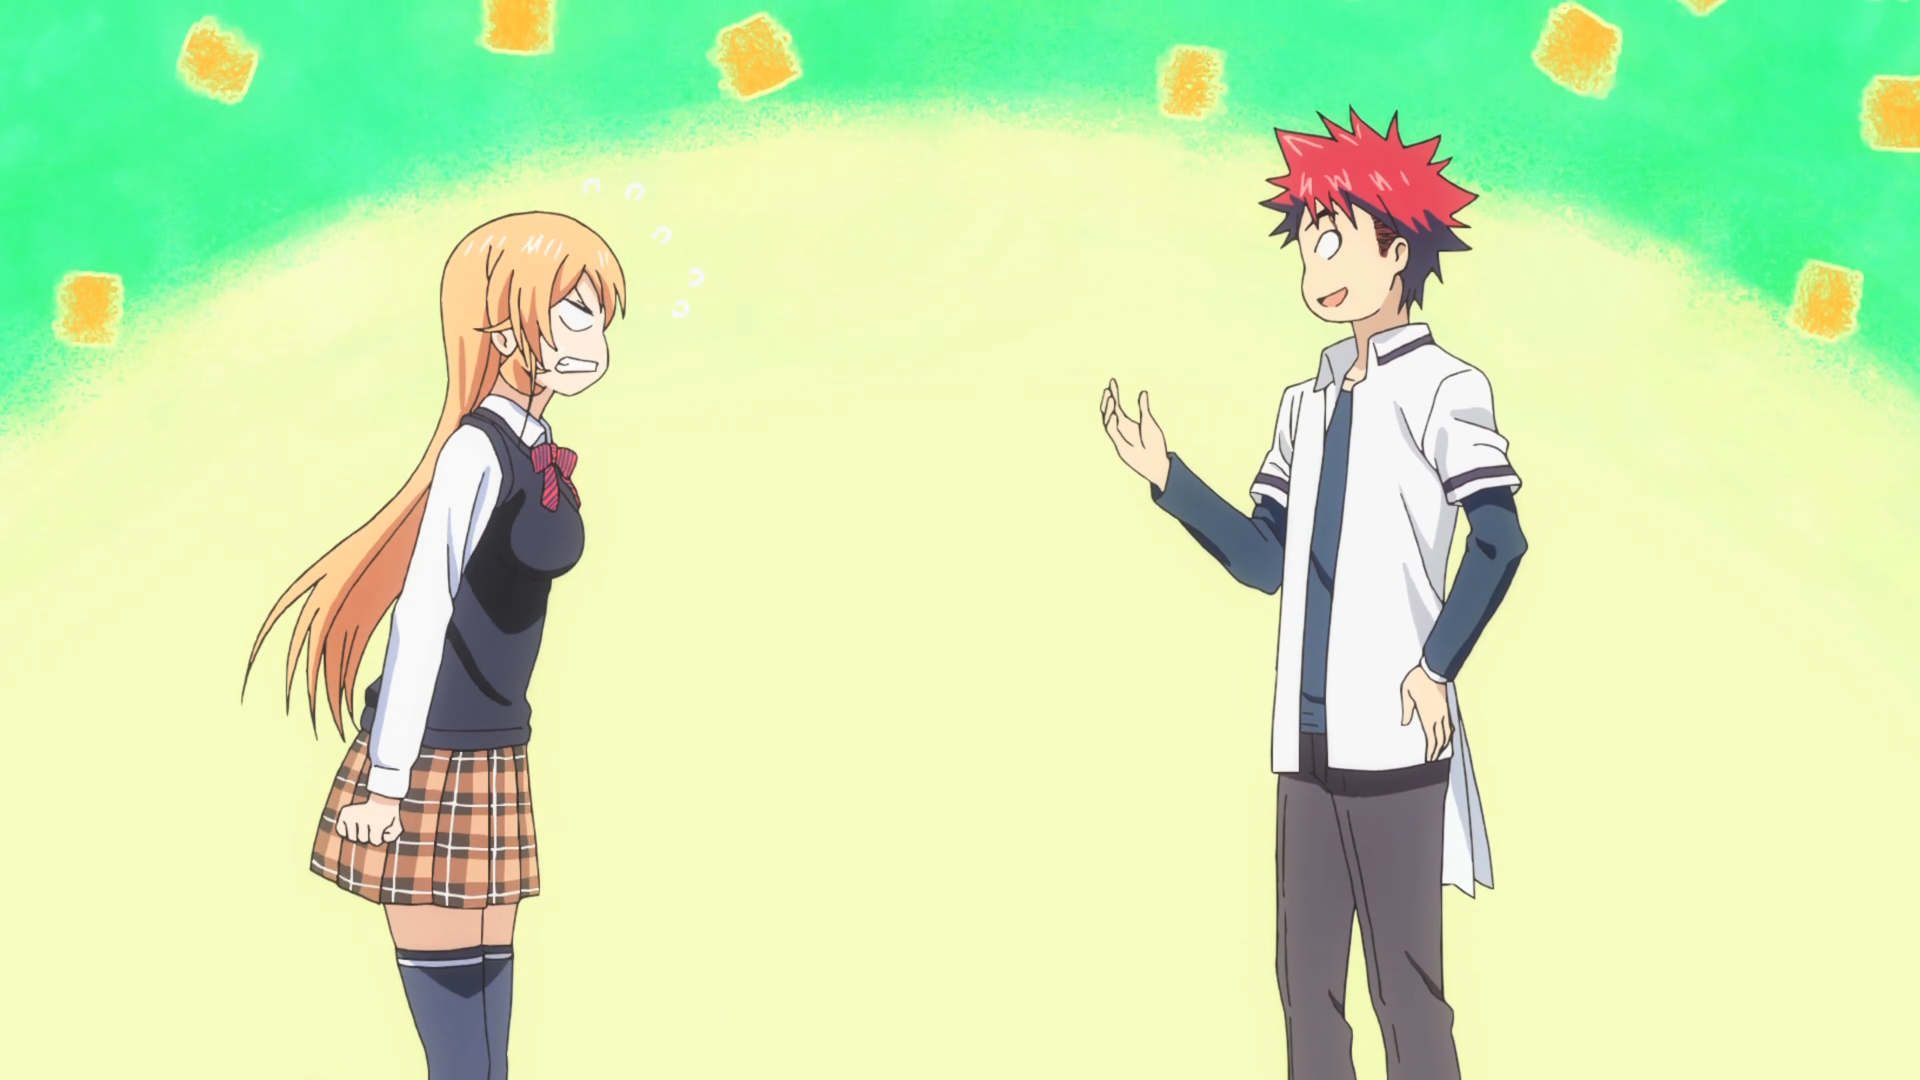 horriblesubs-shokugeki-no-soma-s2-01-1080p_001_3361